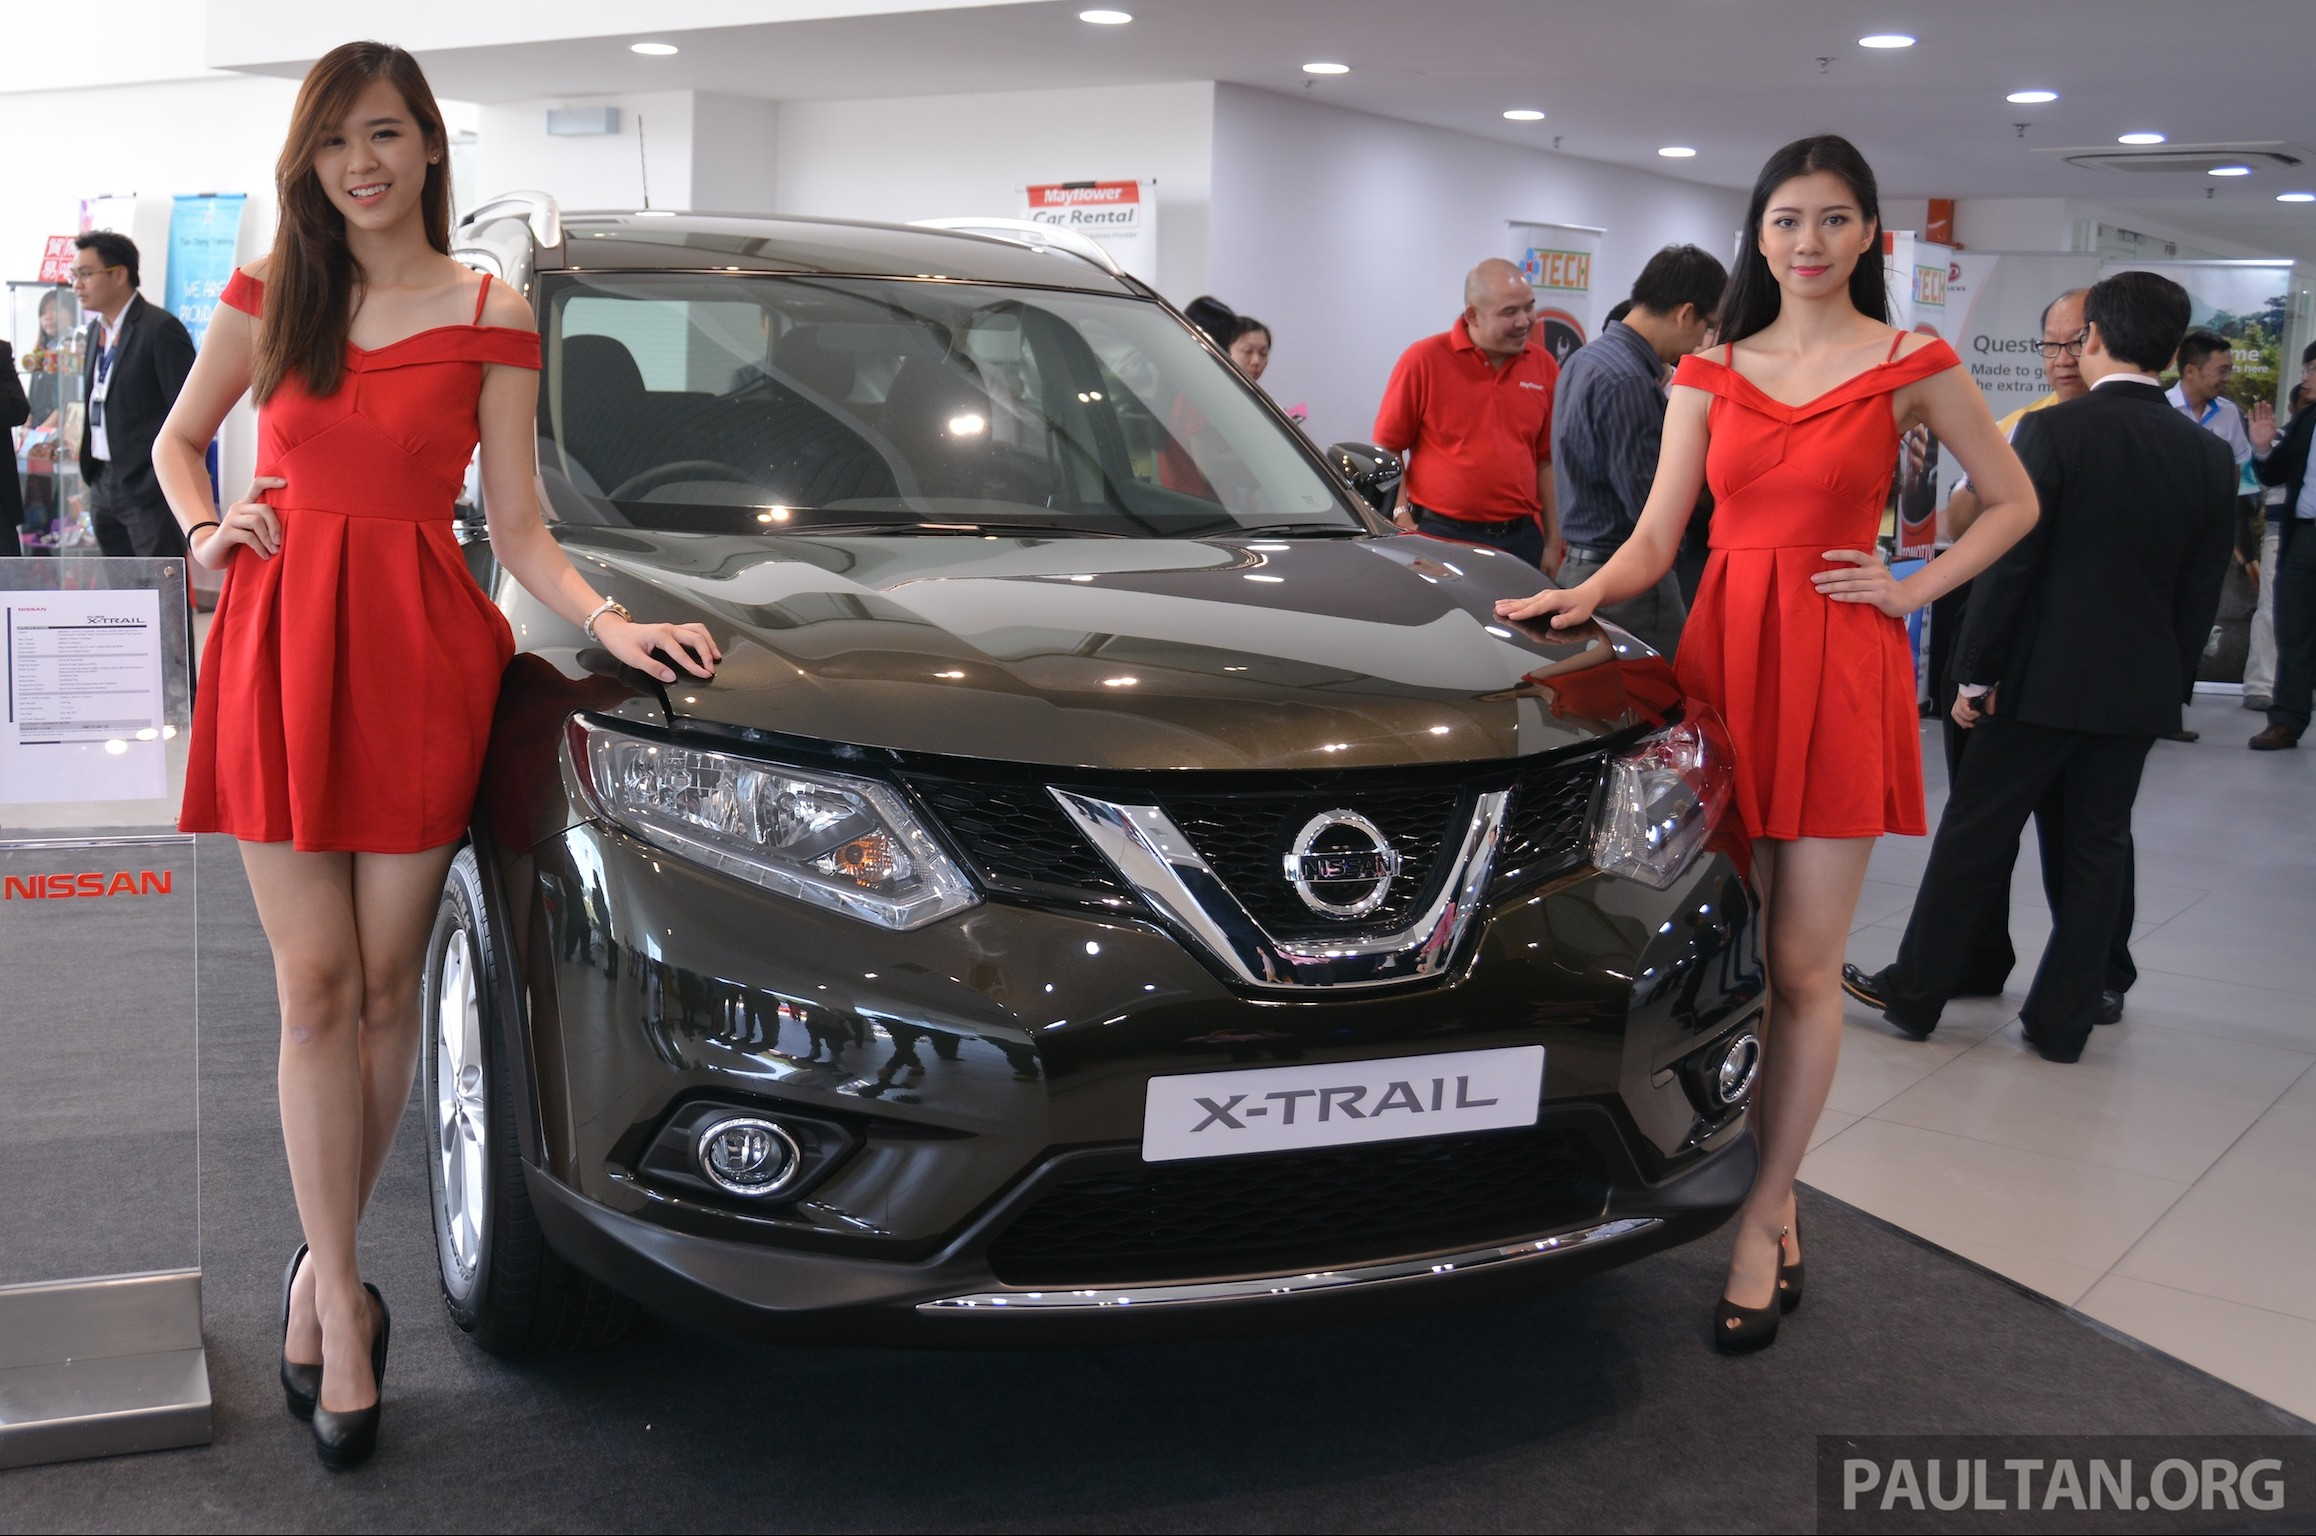 Nissan X Trail Ridingirls